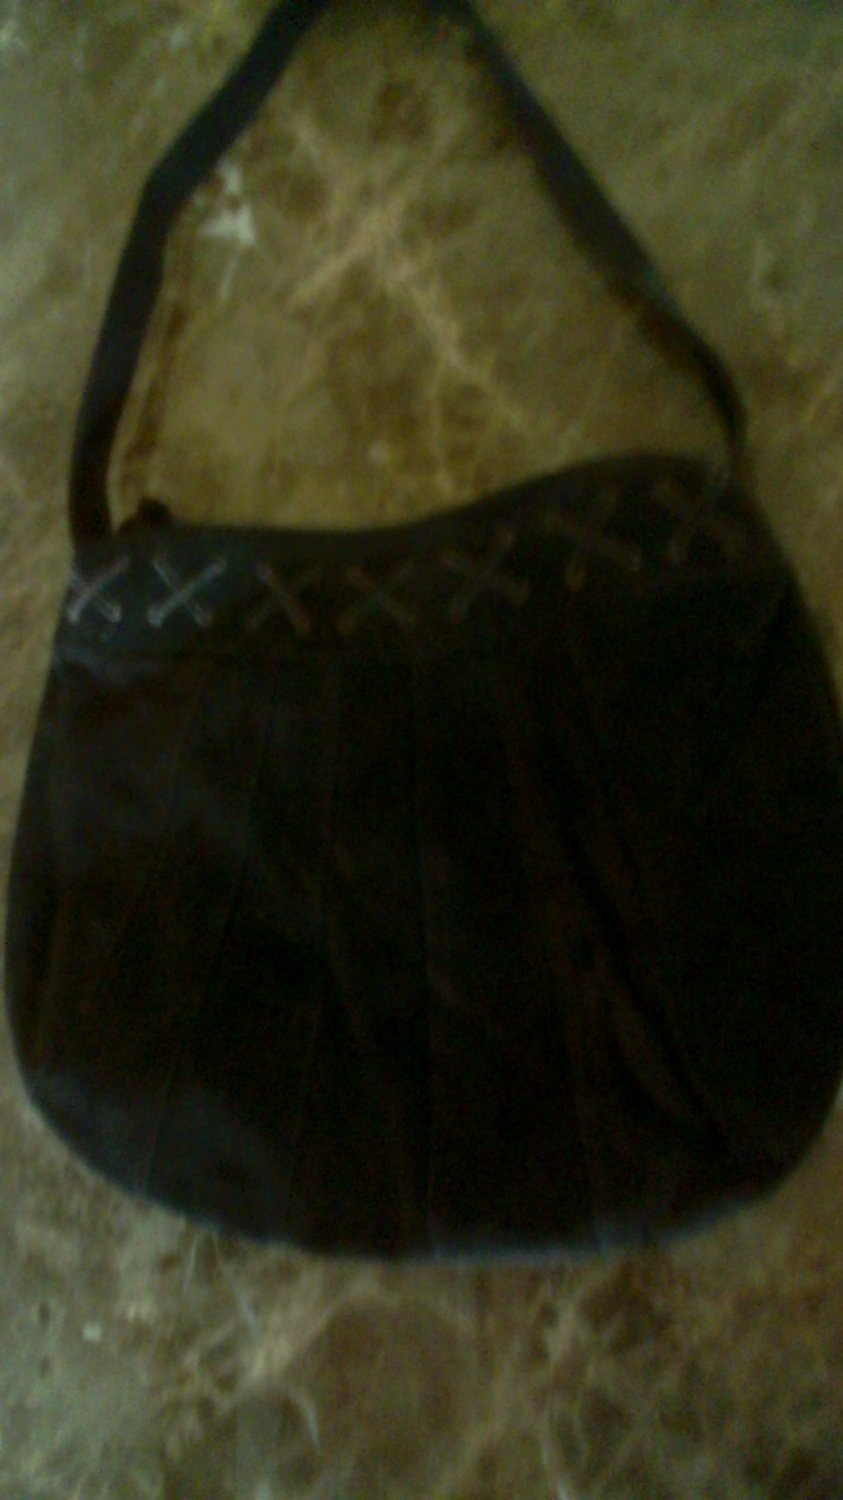 Brown suede purse